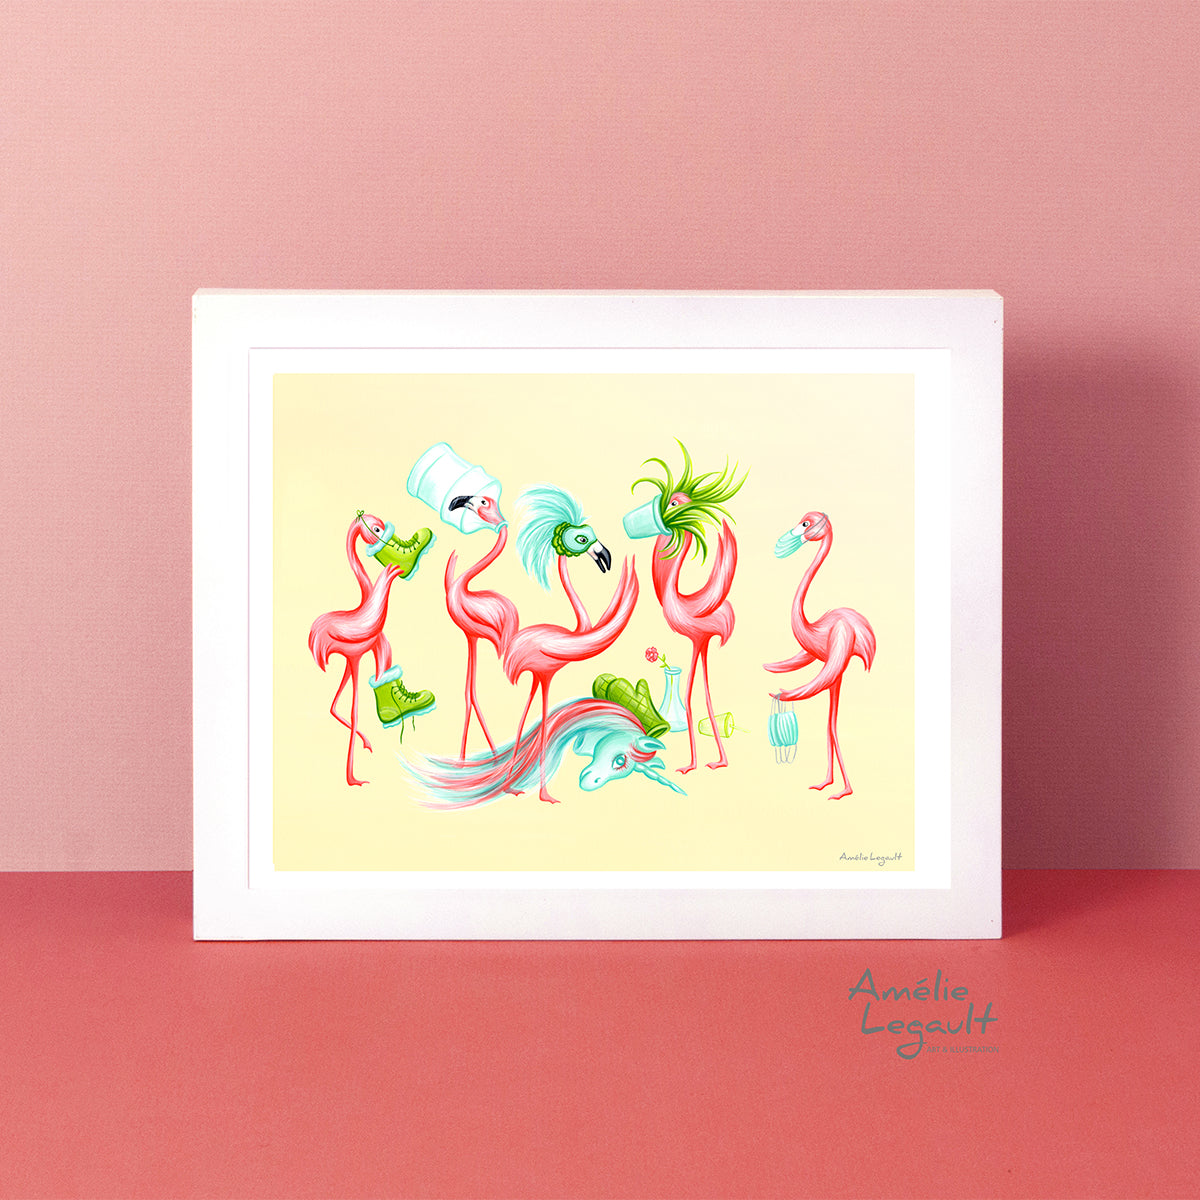 Pink flamingos wearing medical mask, flamingo art work, flamingo decor, flamingo party, flamingo love, flamingo theme, pandemic, covid-19 souvenir, amelie legault